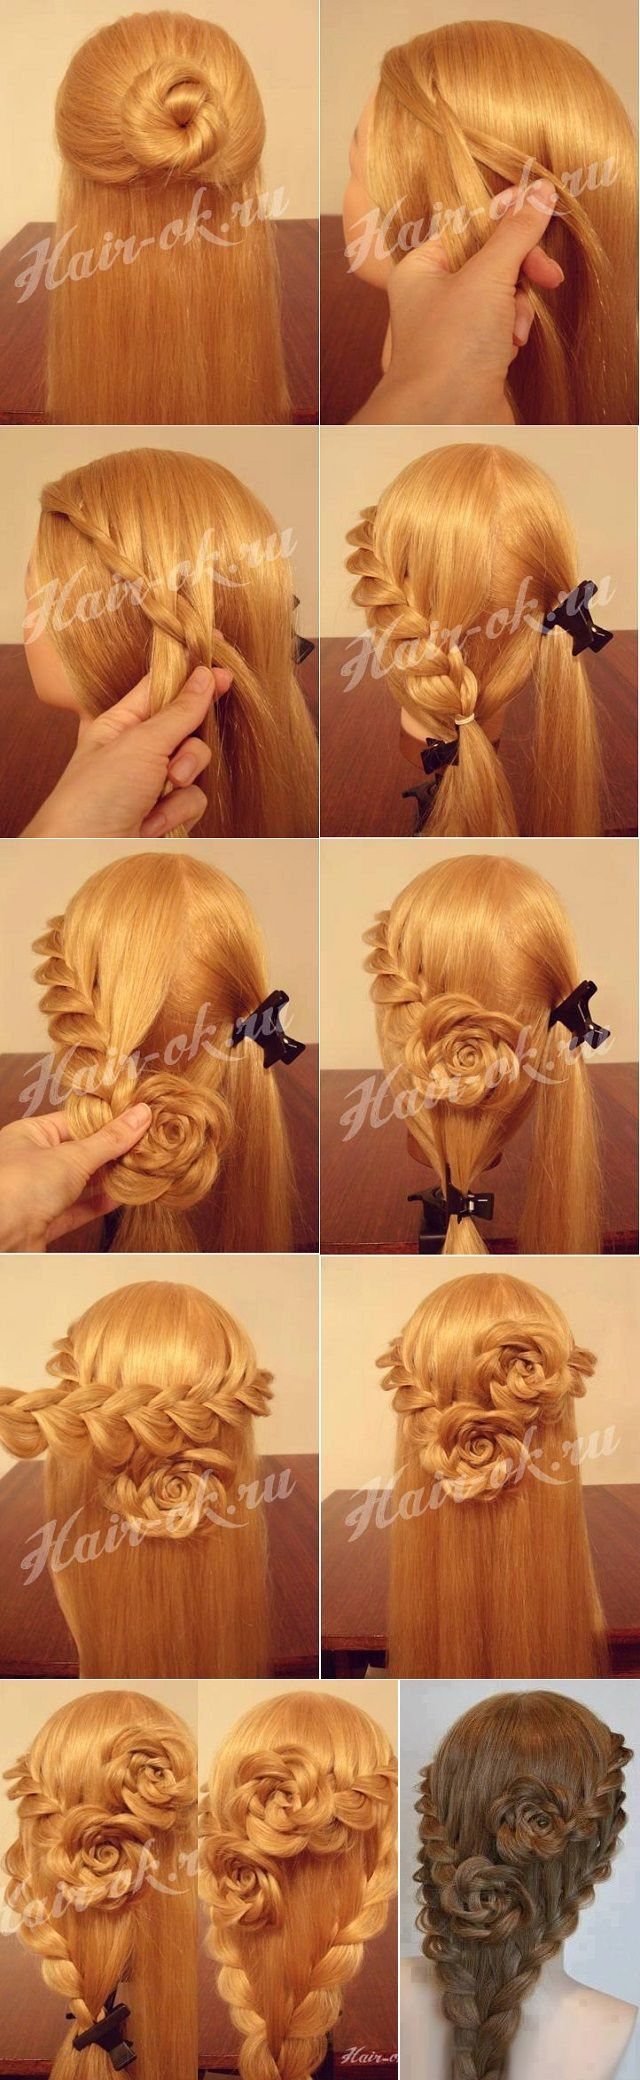 Rose Bud Flower Braid Hairstyle – Tutorial Not that I'll ever be able to actually do this...